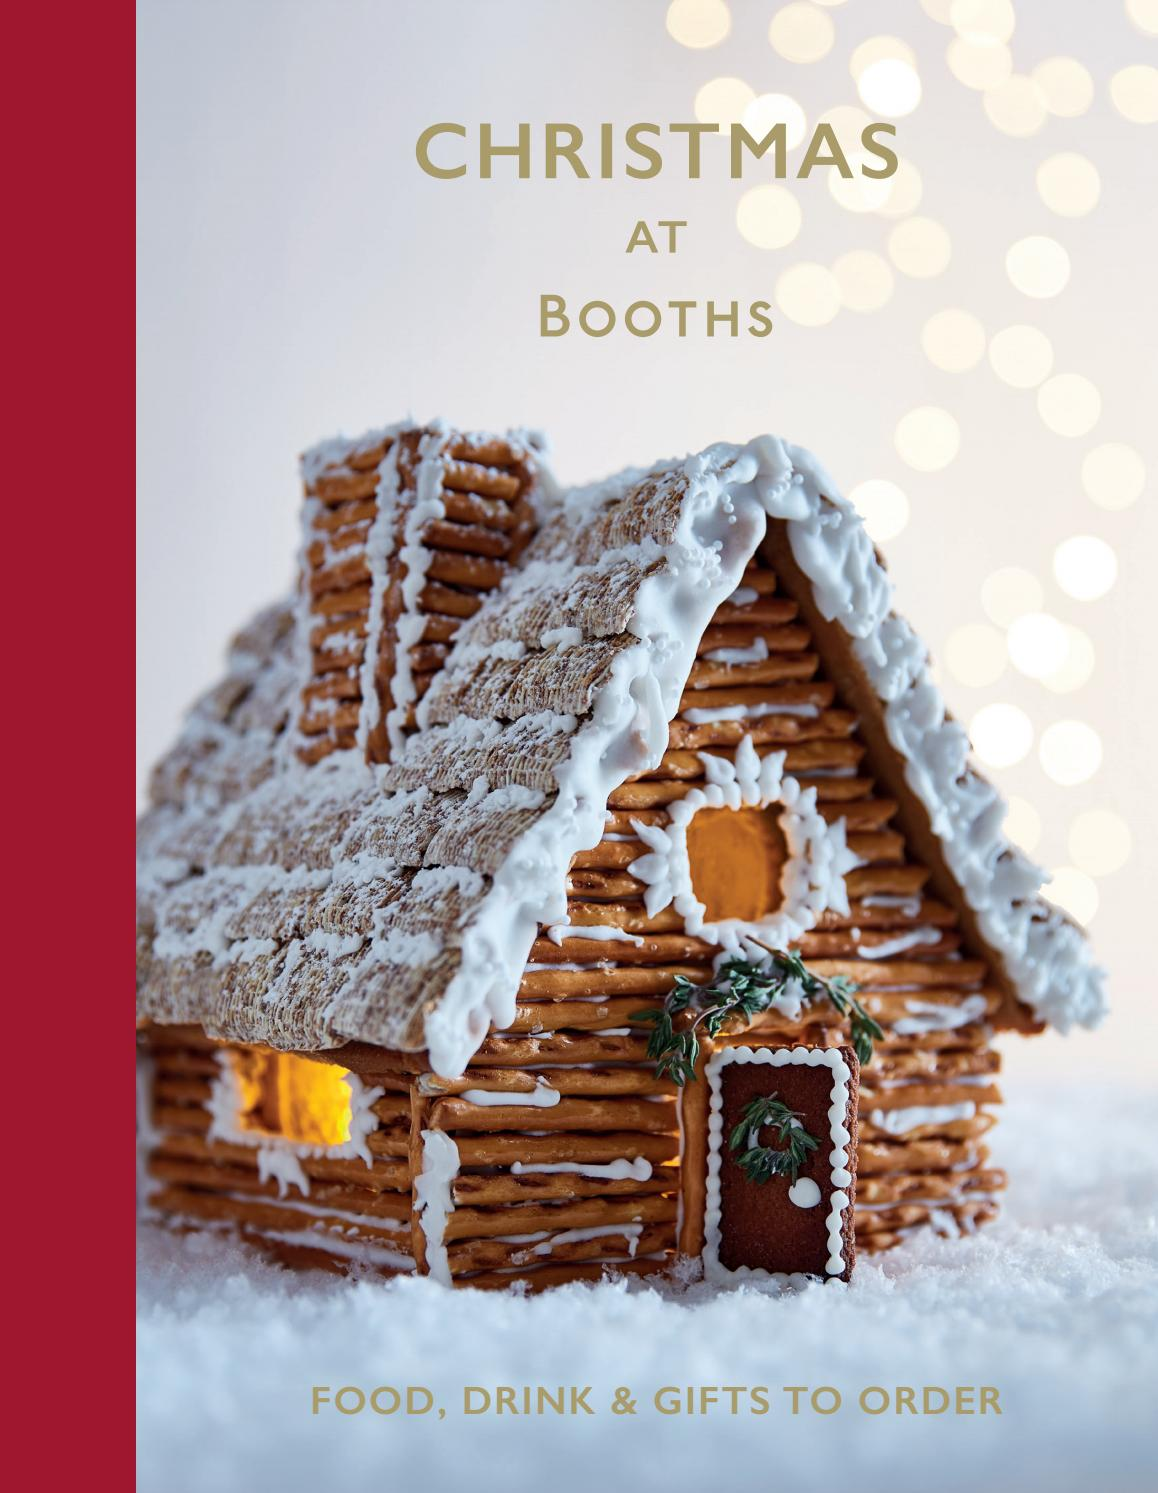 Booths Christmas Book Cover 2018